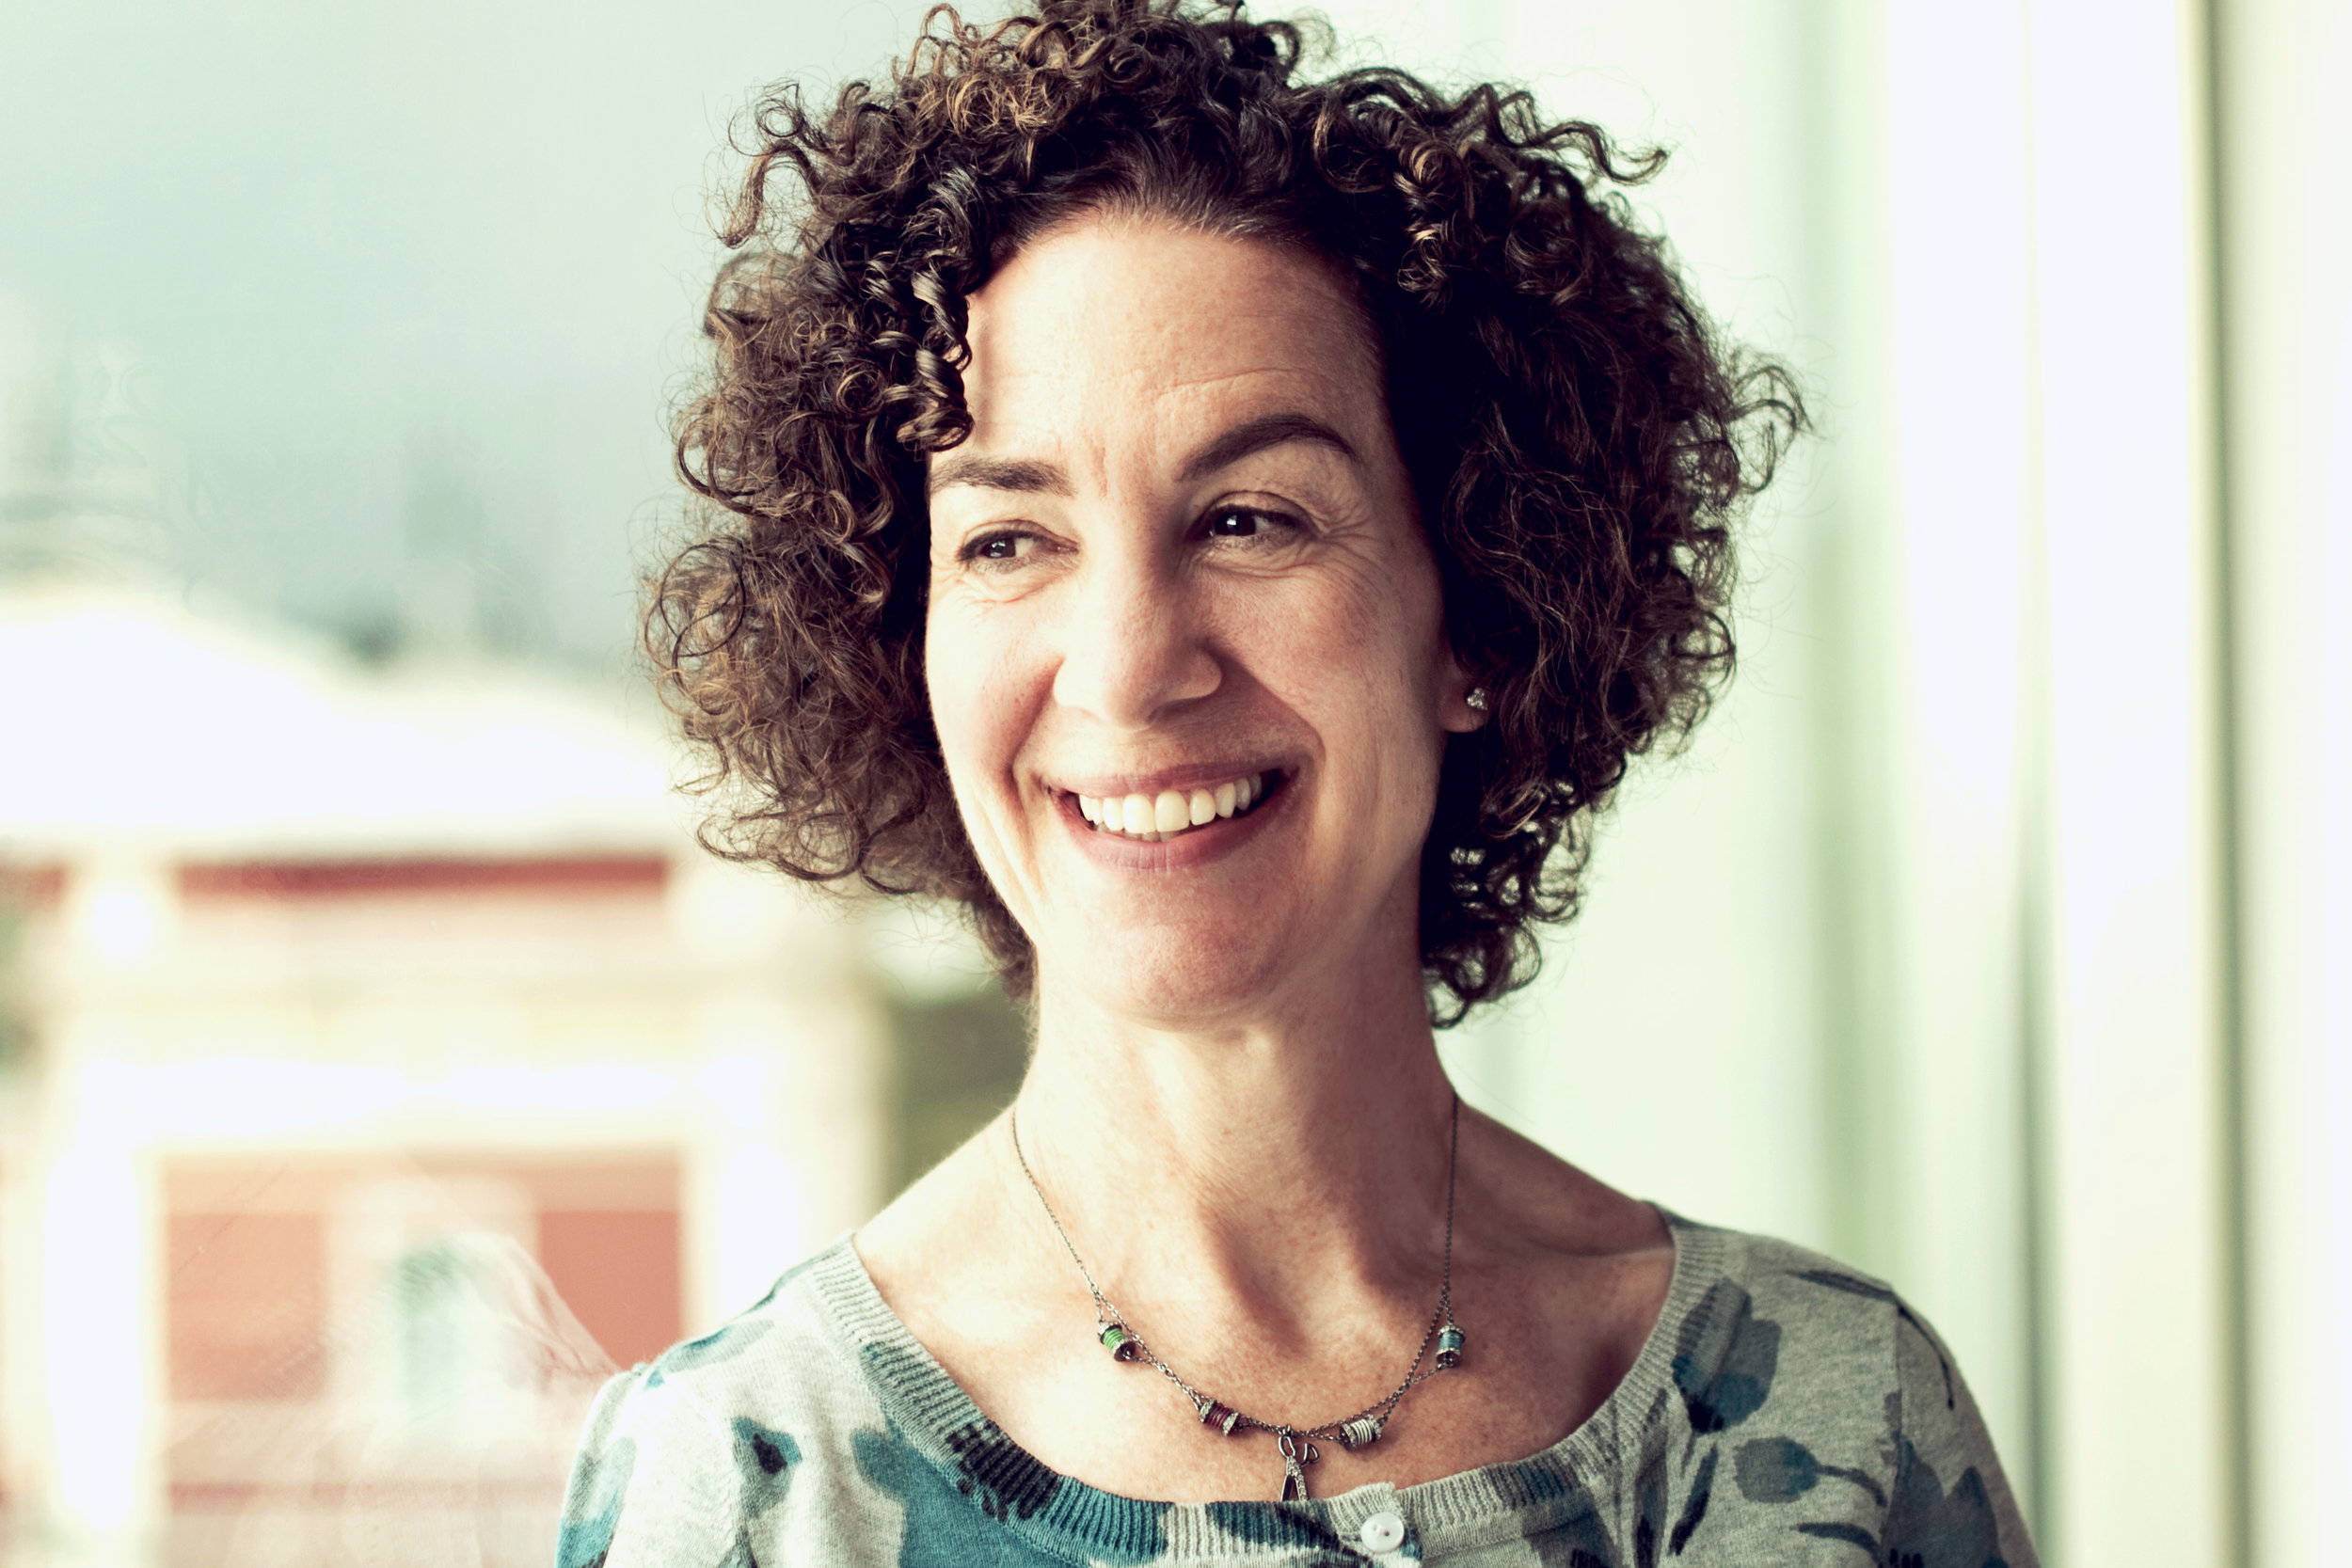 "Ceil Friedman - Born in Brooklyn, New York, Ceil Friedman grew up in Minneapolis and, after studying anthropology and art history, worked in the world of contemporary art. A self-described food and wine explorer, Ceil has lived in Verona, Italy, for thirty years and traveled extensively throughout the country and beyond. Over three decades she has forged close relationships with many of the leading chefs and producers in the Verona area. Ceil's devotion to her adopted city led her to write, with her sister Lise, the book ""Letters to Juliet,"" which inspired the eponymous Hollywood film. She is co-owner, with her husband, of the Azienda Agricola Cordioli Erminio in Verona, artisanal producers of gold medal-winning extra virgin olive oils, available at Zingerman's. Ceil Friedman is a Veneto Region-certified olive oil panel taster."